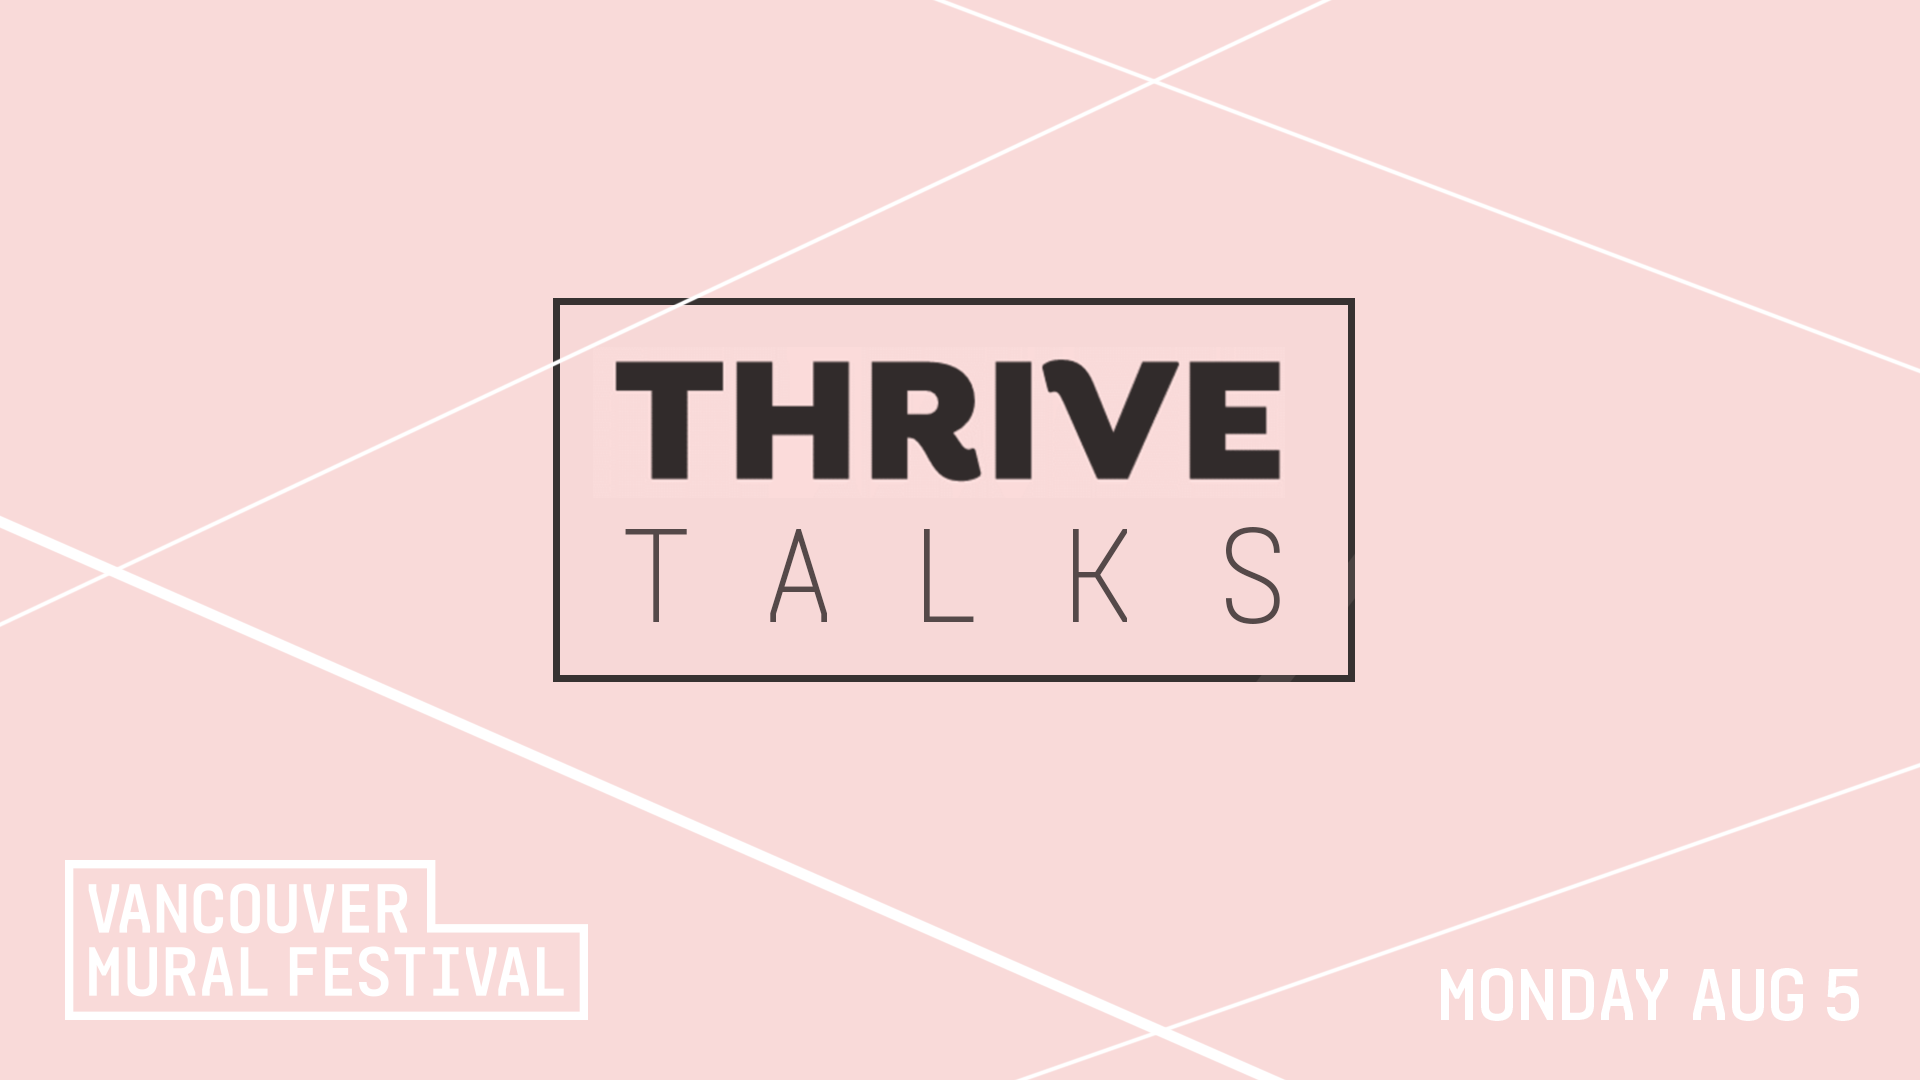 VMF2019-FBEventImages-ThriveTalks.png